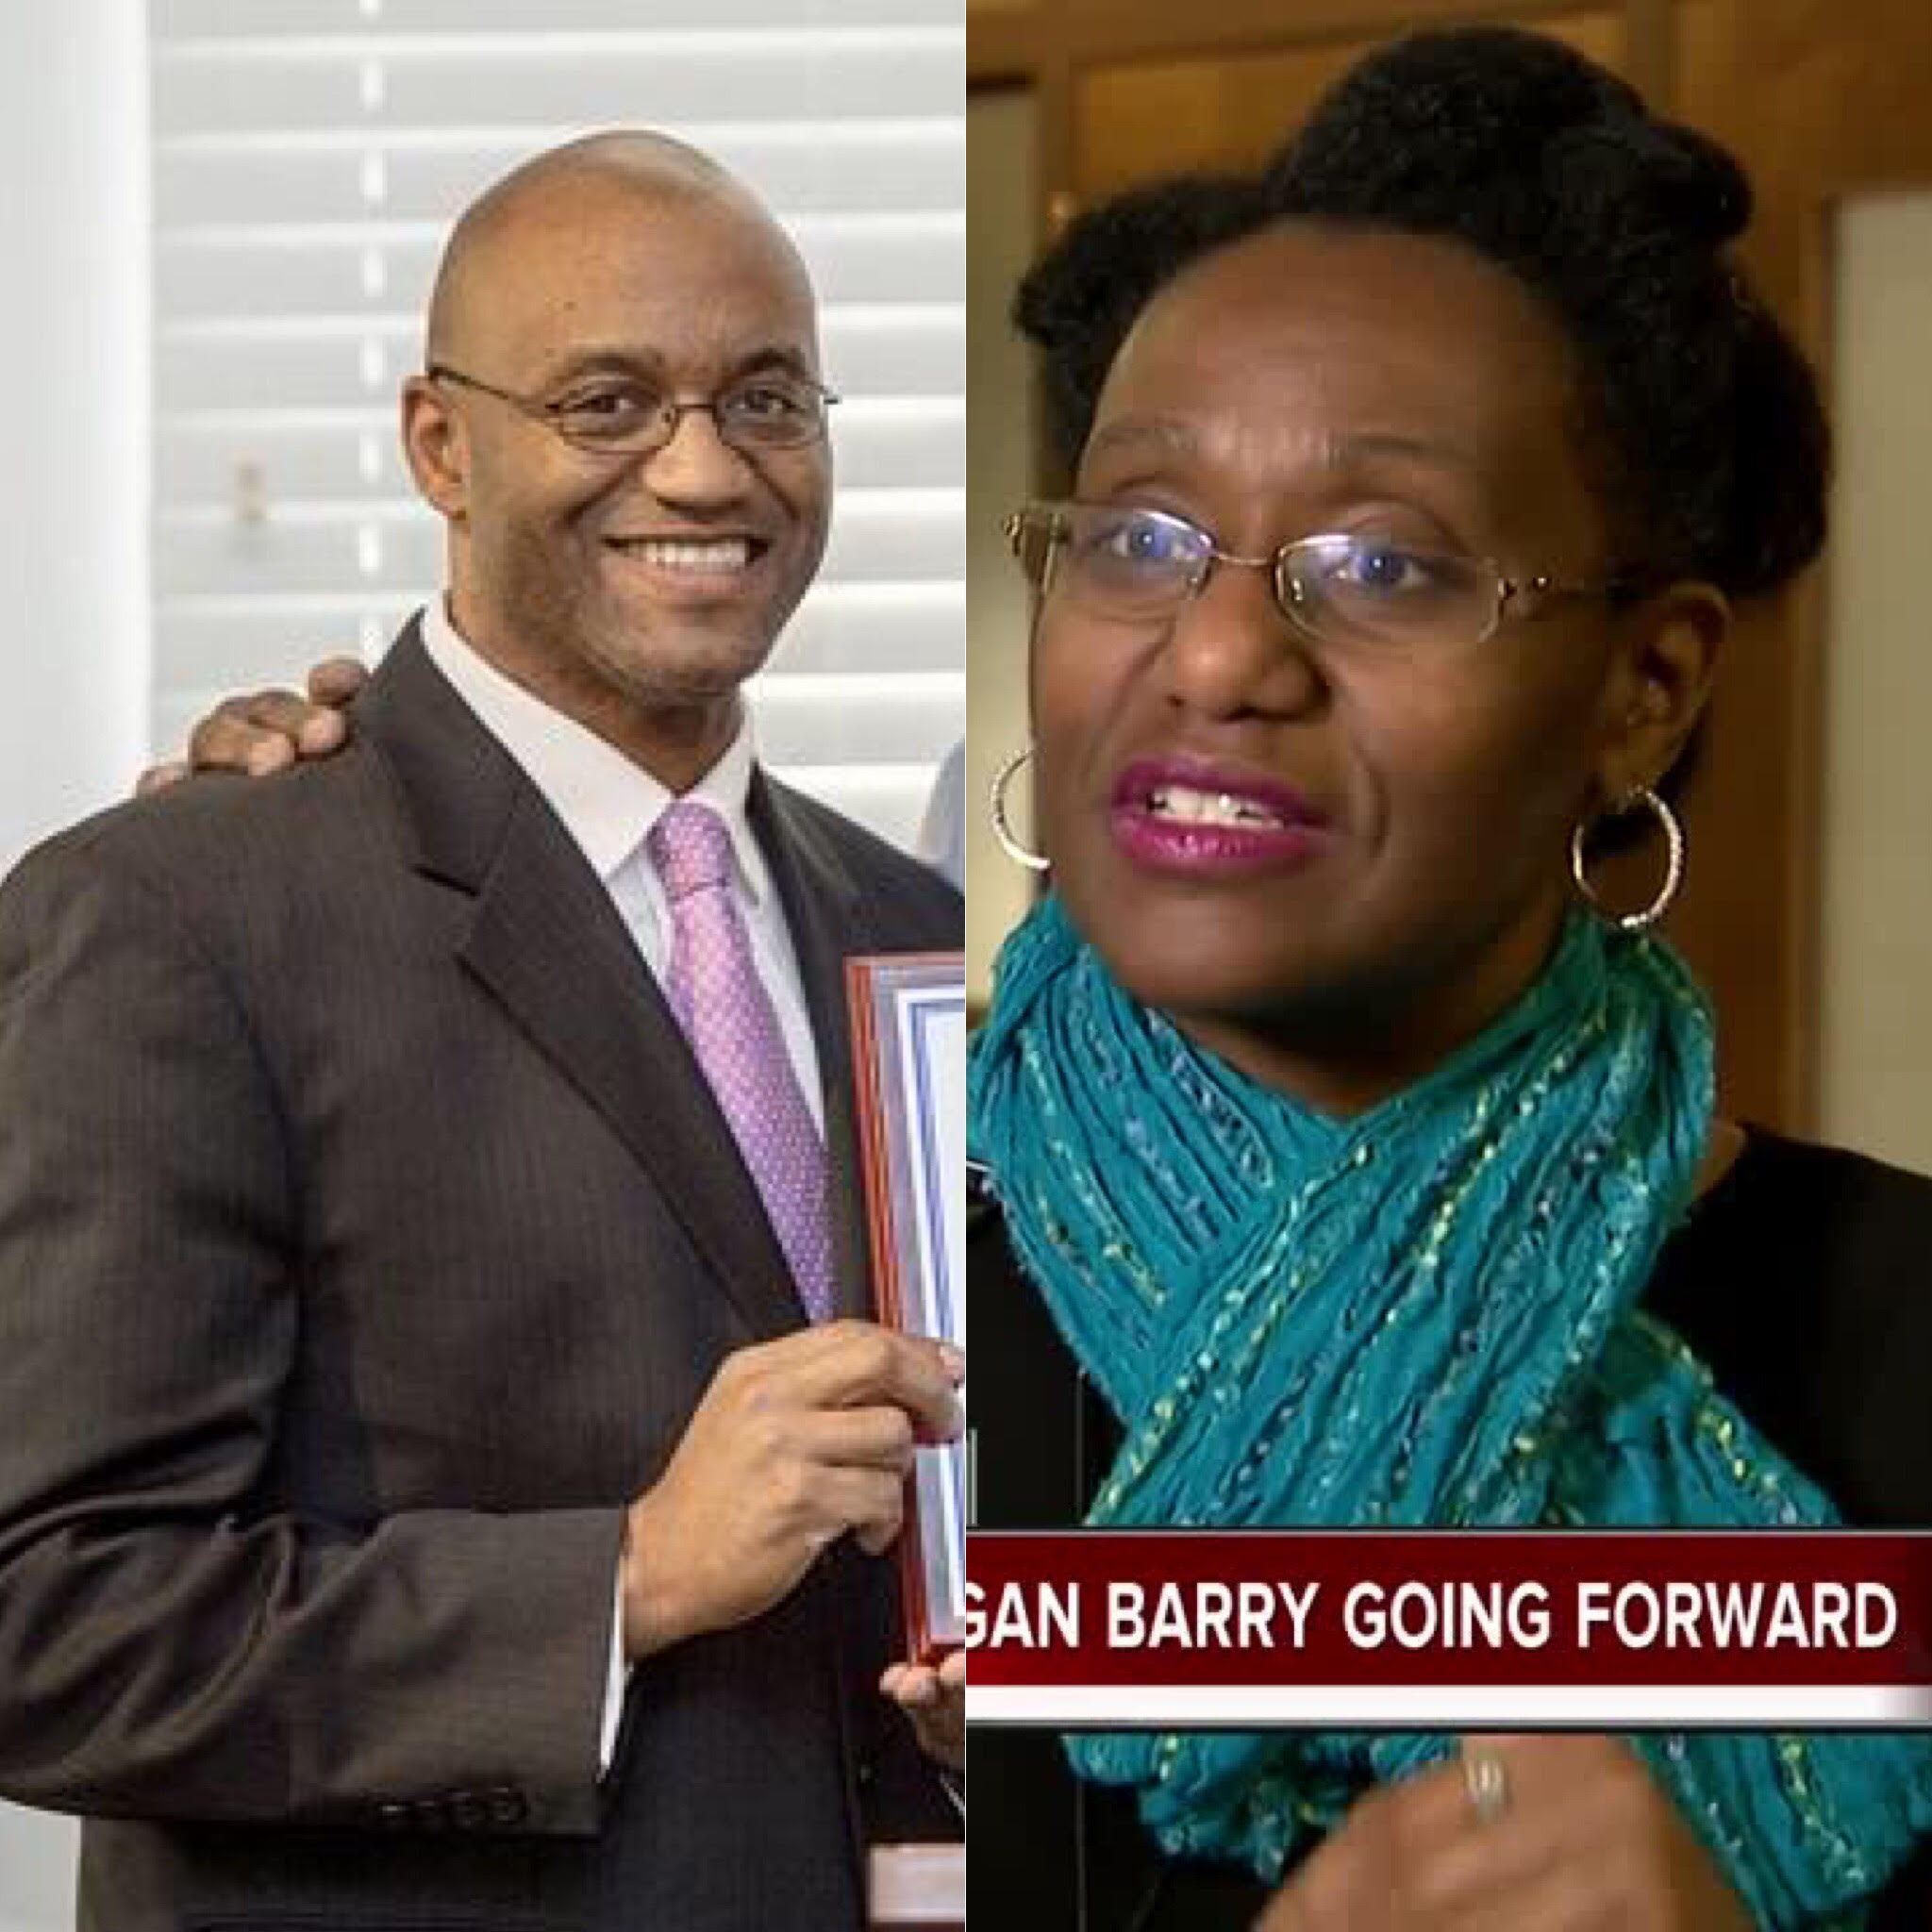 Guests: - Dr. Sekou Franklin and Theeda MurphyBoth are members of Community Oversight Now, a coalition pushing for a police community oversight board in Nashville.